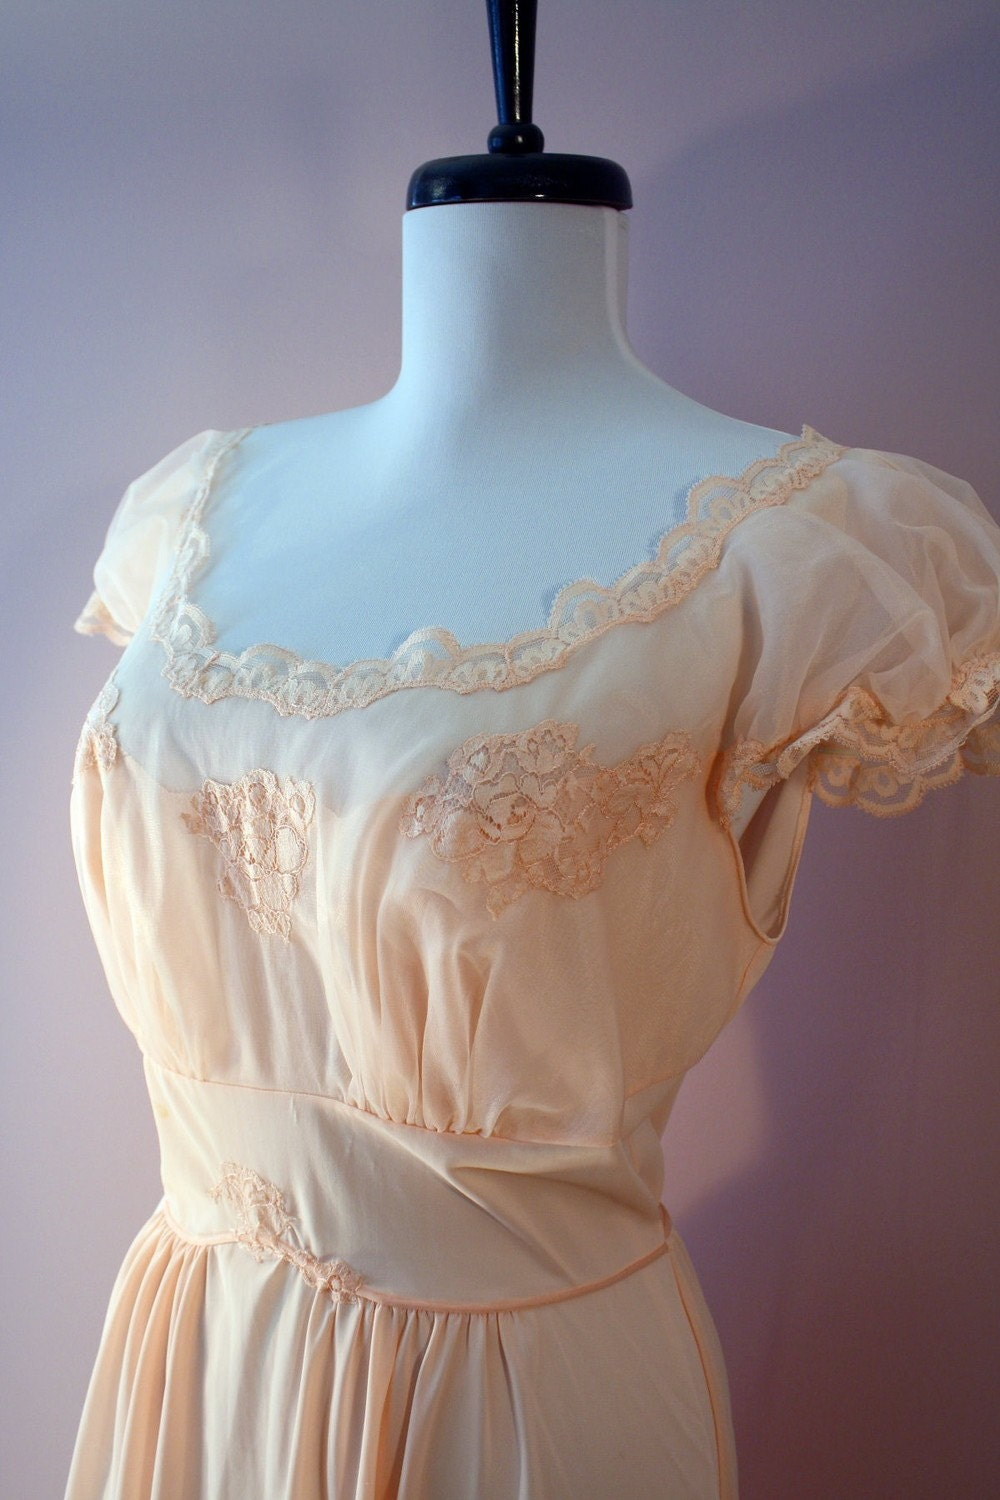 70s / 30s Frilly Peach Nightgown w Puff Sleeves and Lace Applique 36 M